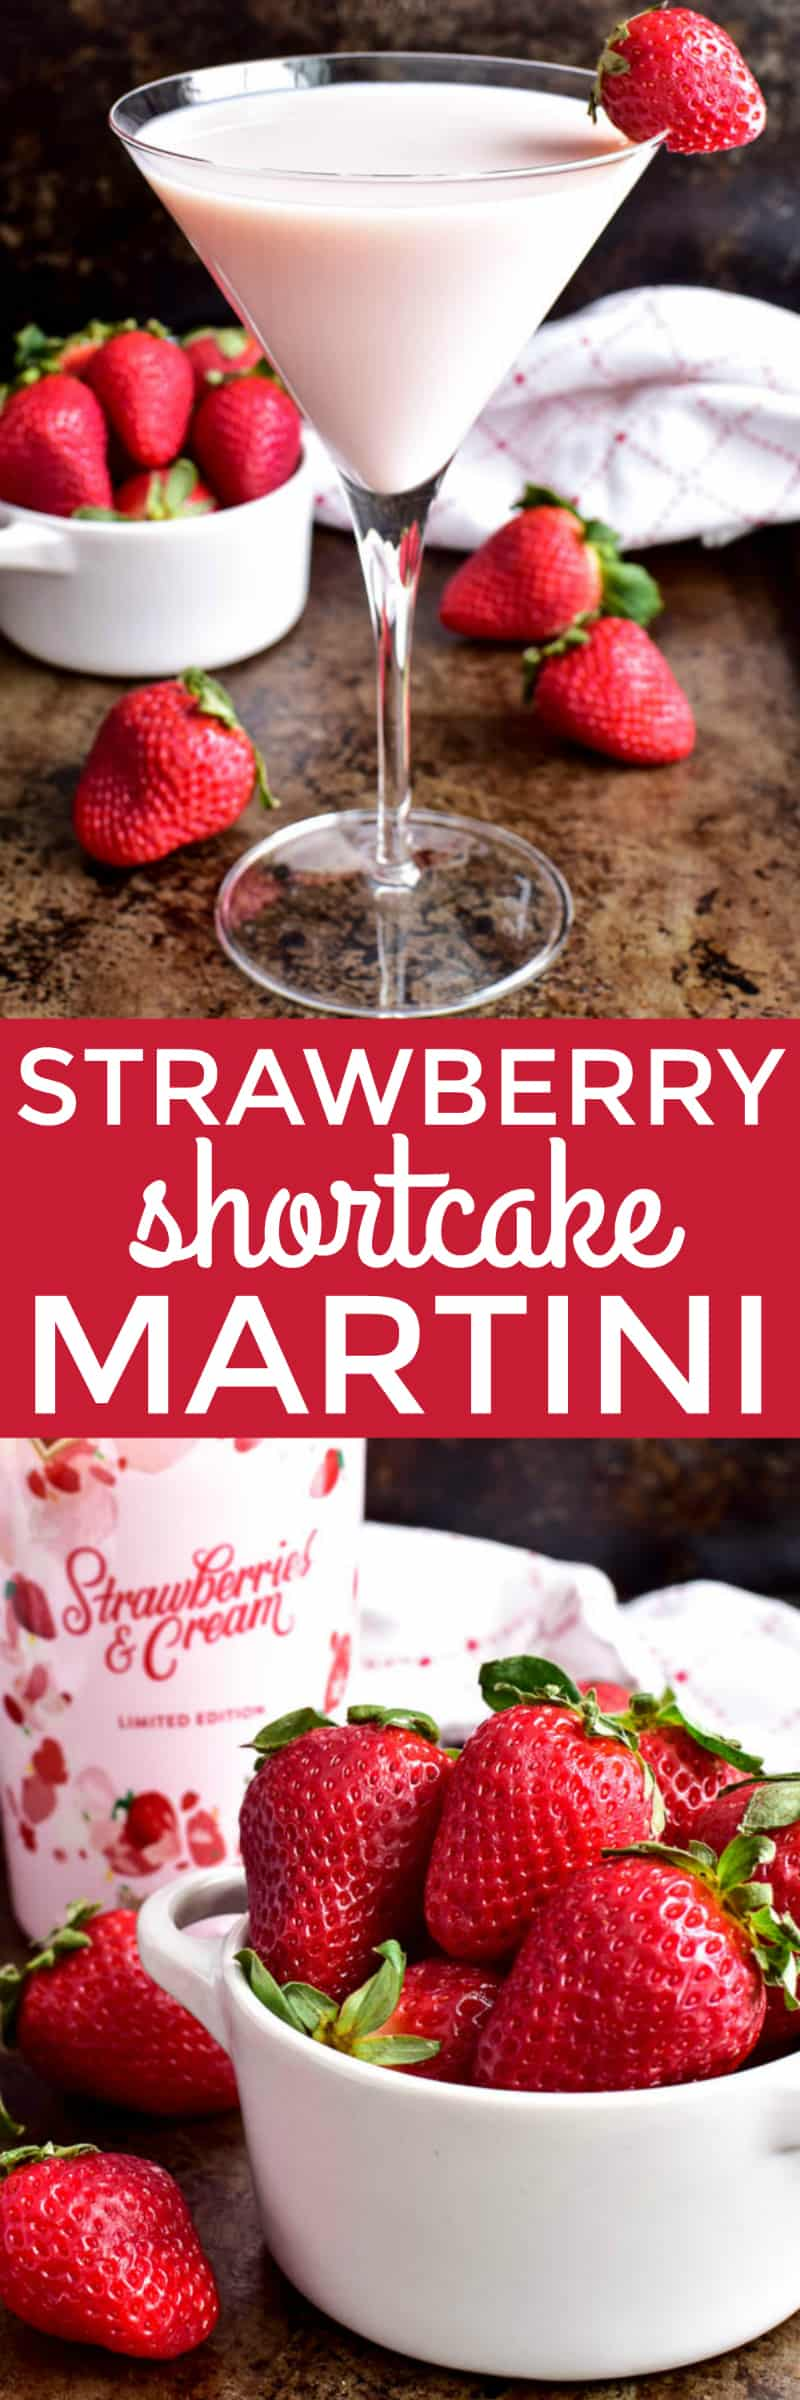 This Strawberry Shortcake Martini is the ultimate dessert drink.  Made with just 3 simple ingredients, this cocktail is sweet, creamy, and packed with yummy strawberry flavor.  It's the perfect drink for Valentine's Day, ladies' nights, or special celebrations. If you love strawberry shortcake, you're sure to adore this fun, delicious twist!